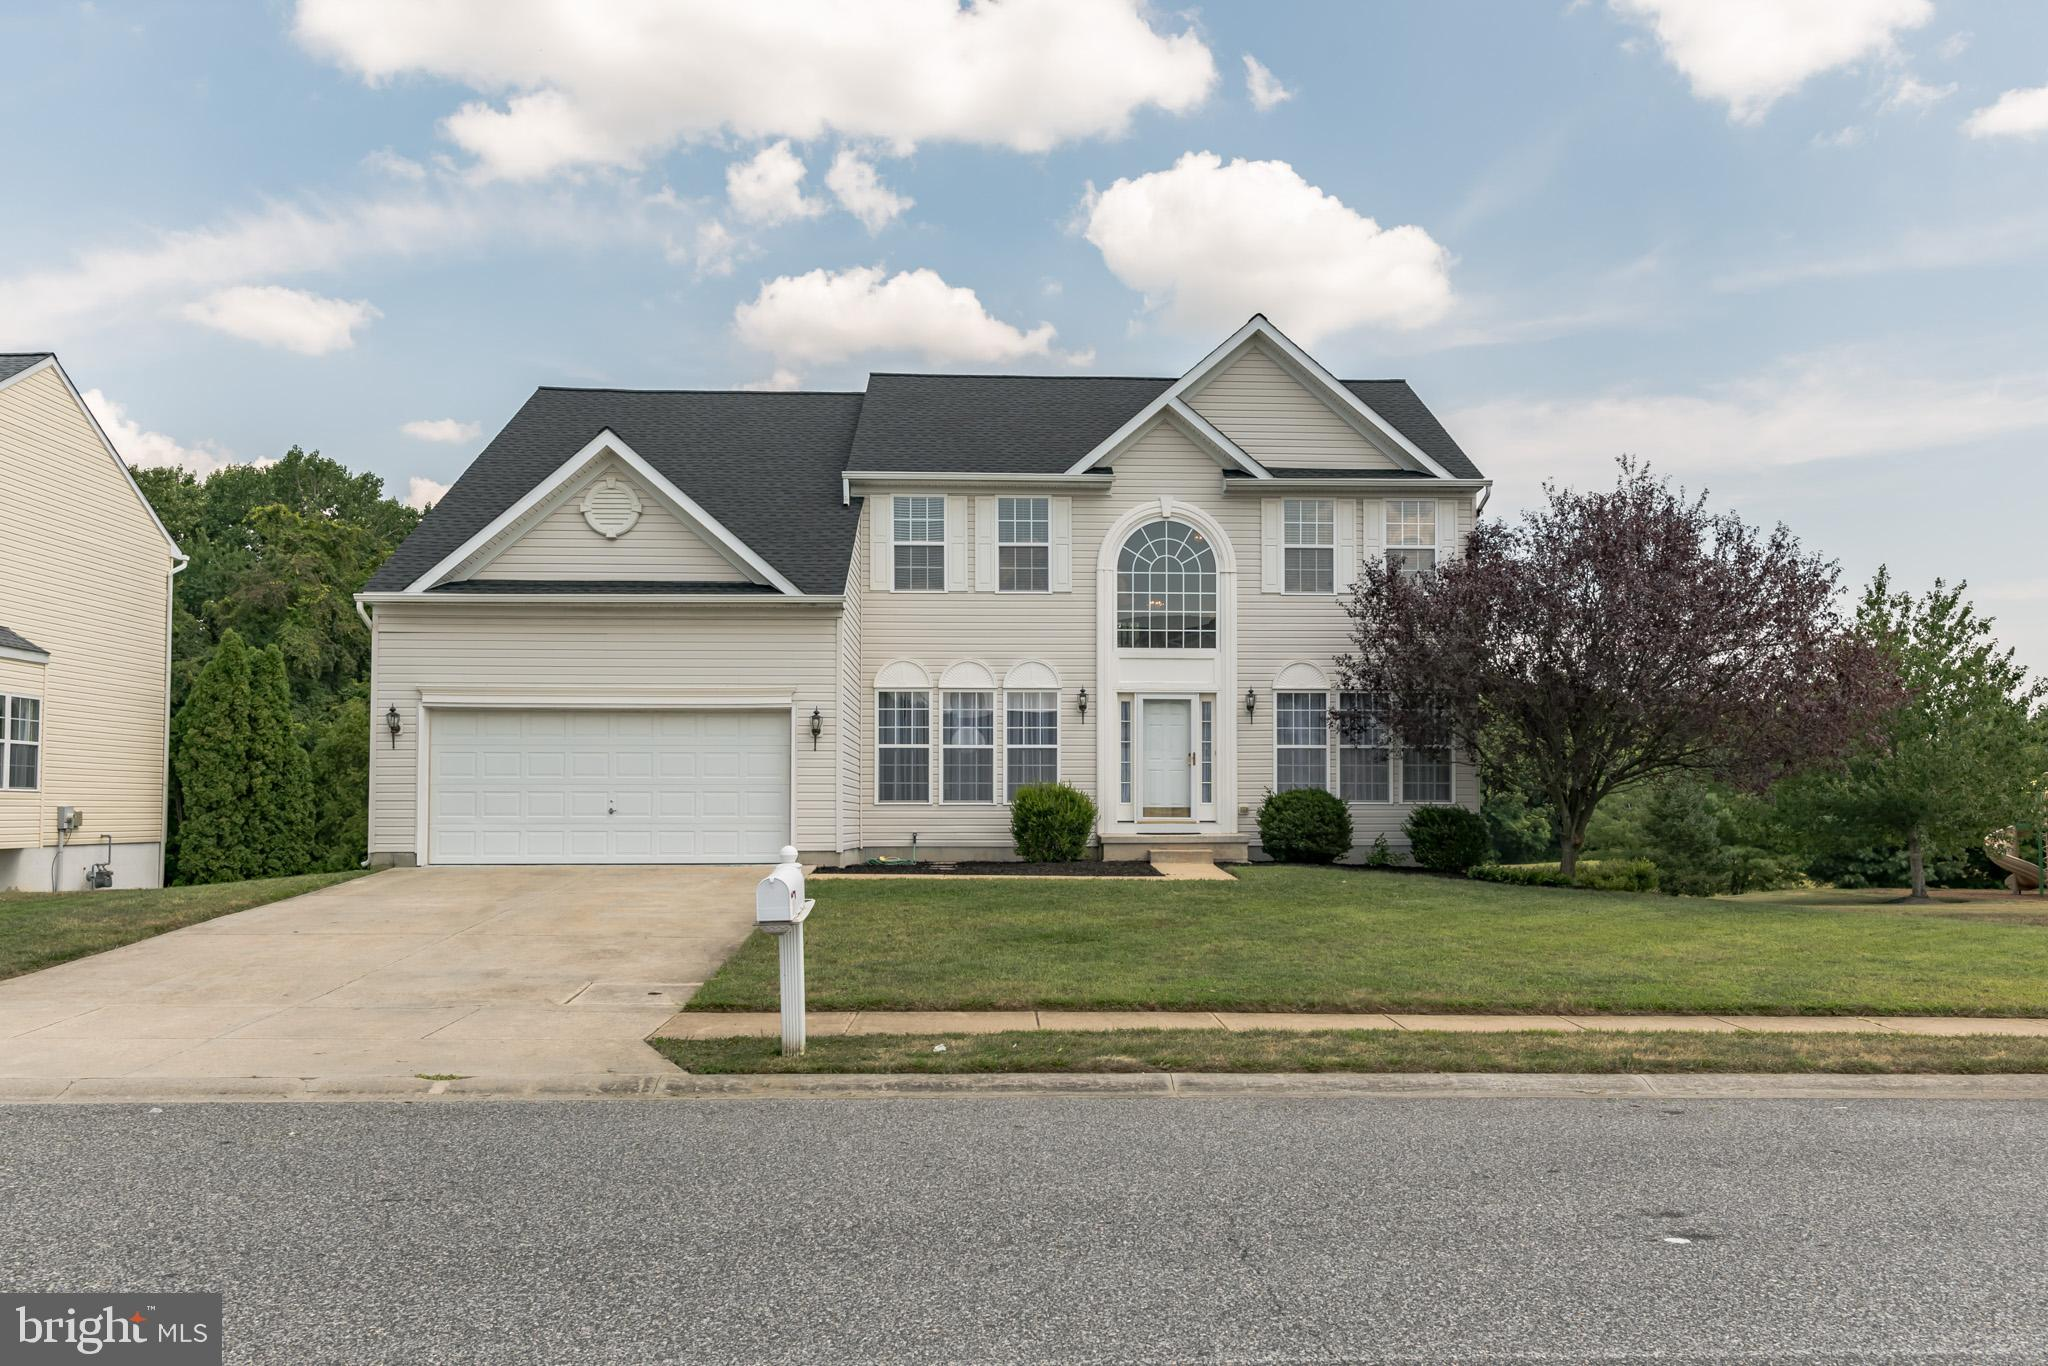 Welcome home to 33 Spring Creek Drive located in the highly desirable community of Spring Creek. Thi